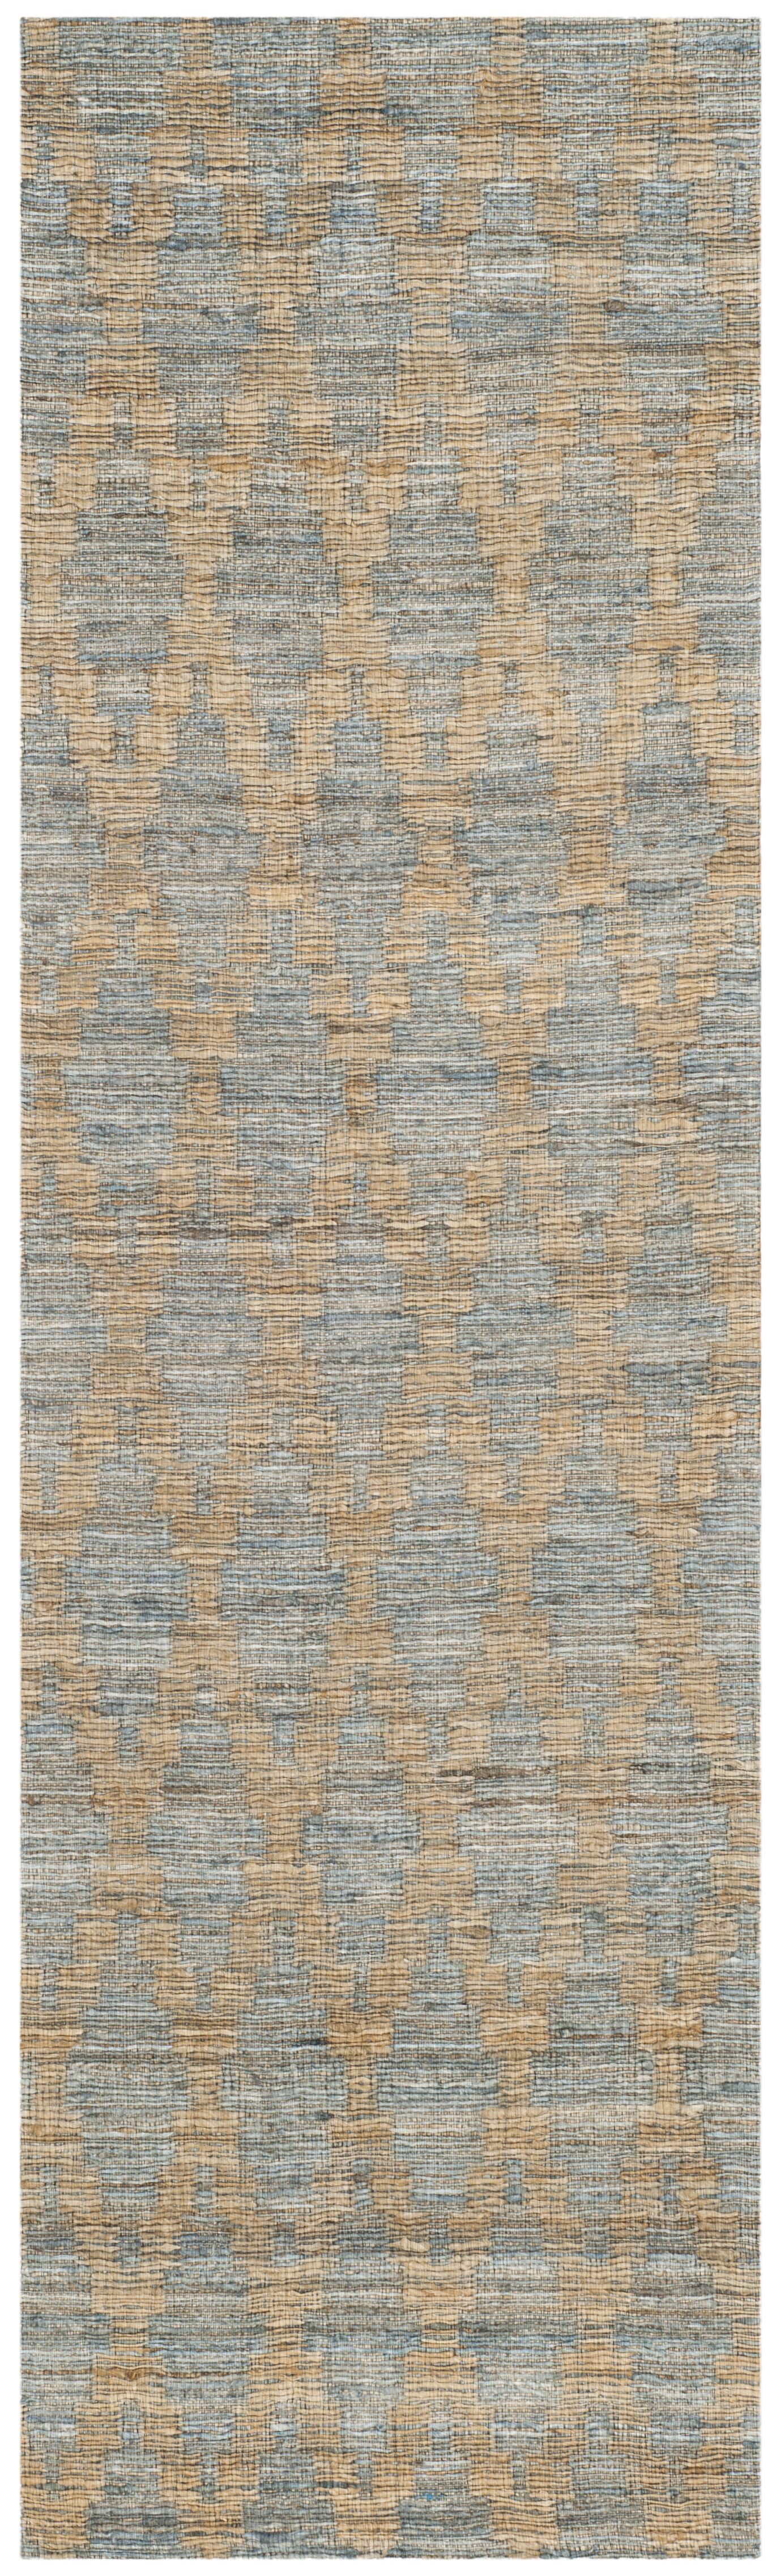 Montserrat Meigs Hand-Woven Light Blue/Gold Area Rug Rug Size: Runner 2'3